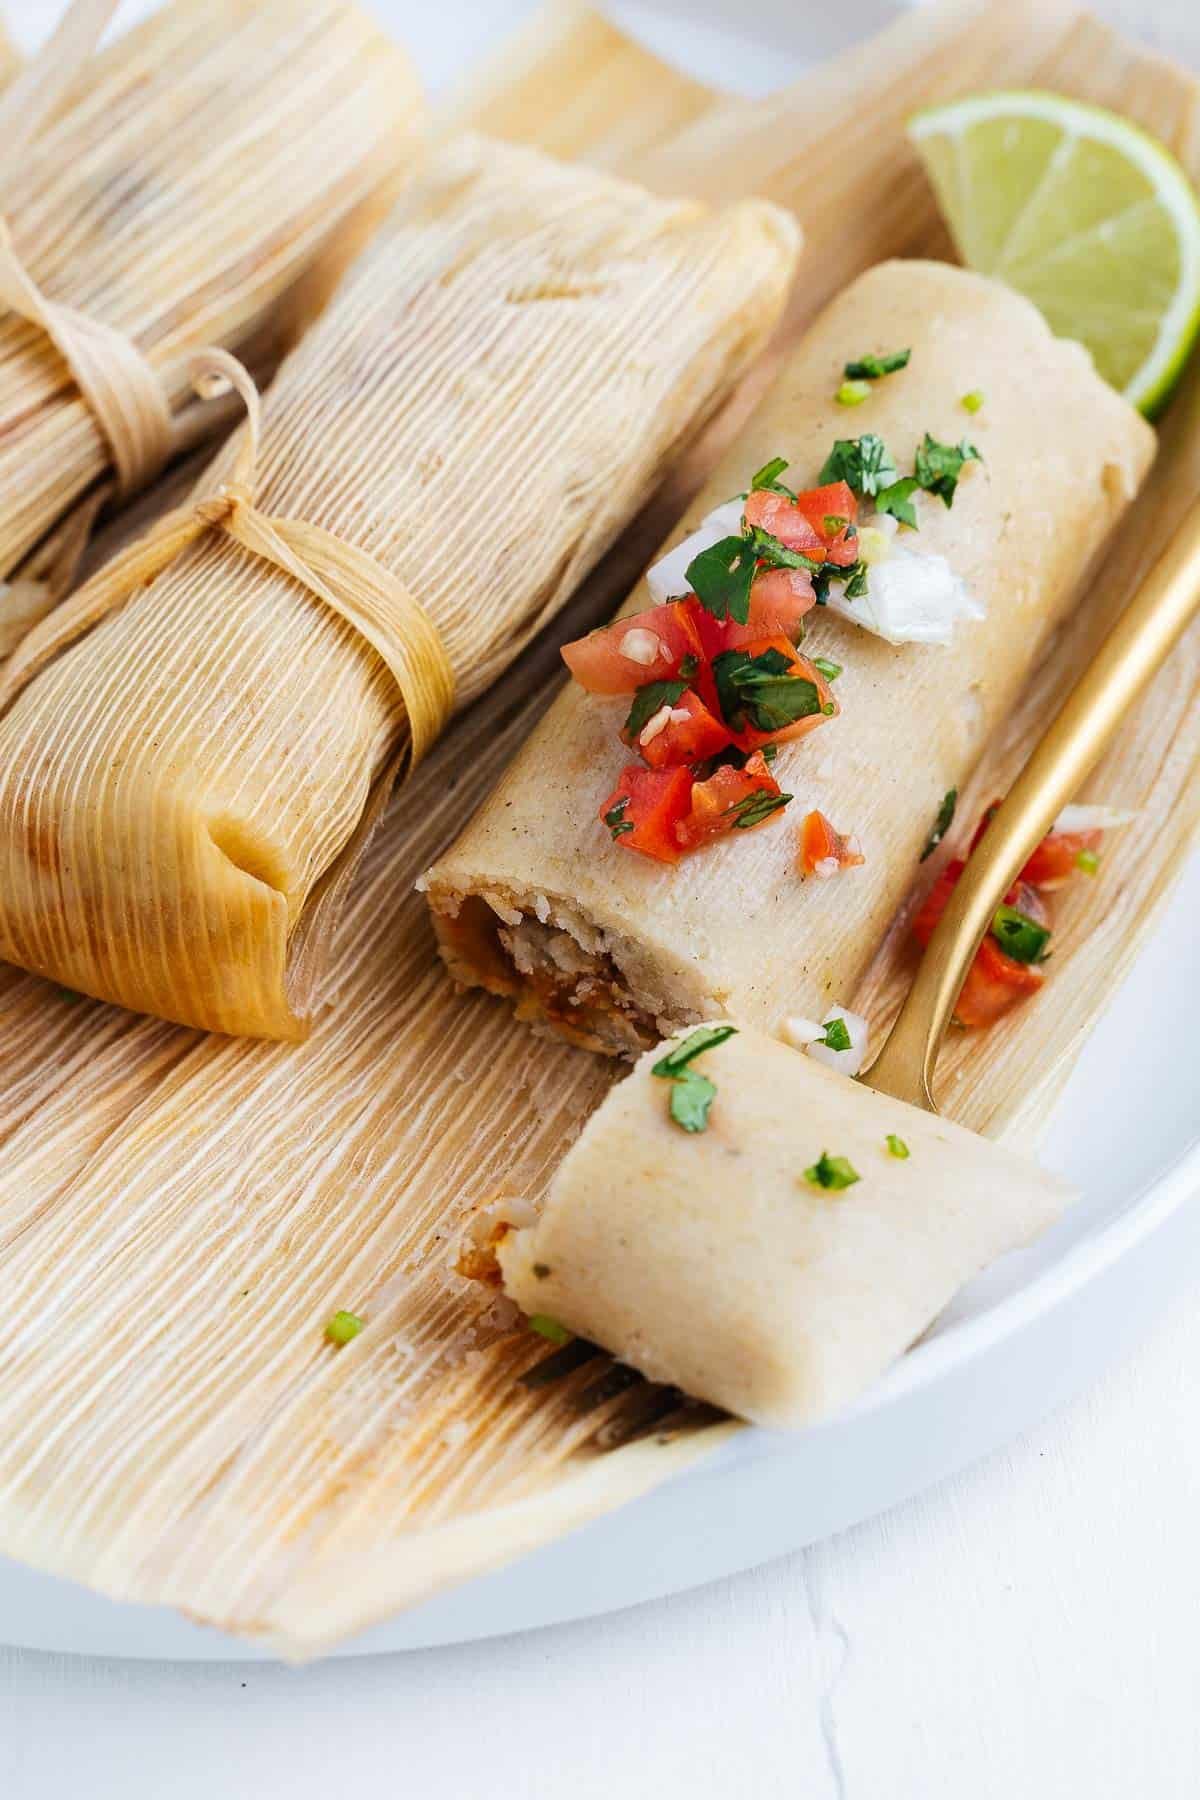 Vegan Tamales With Salsa Fresca on Top